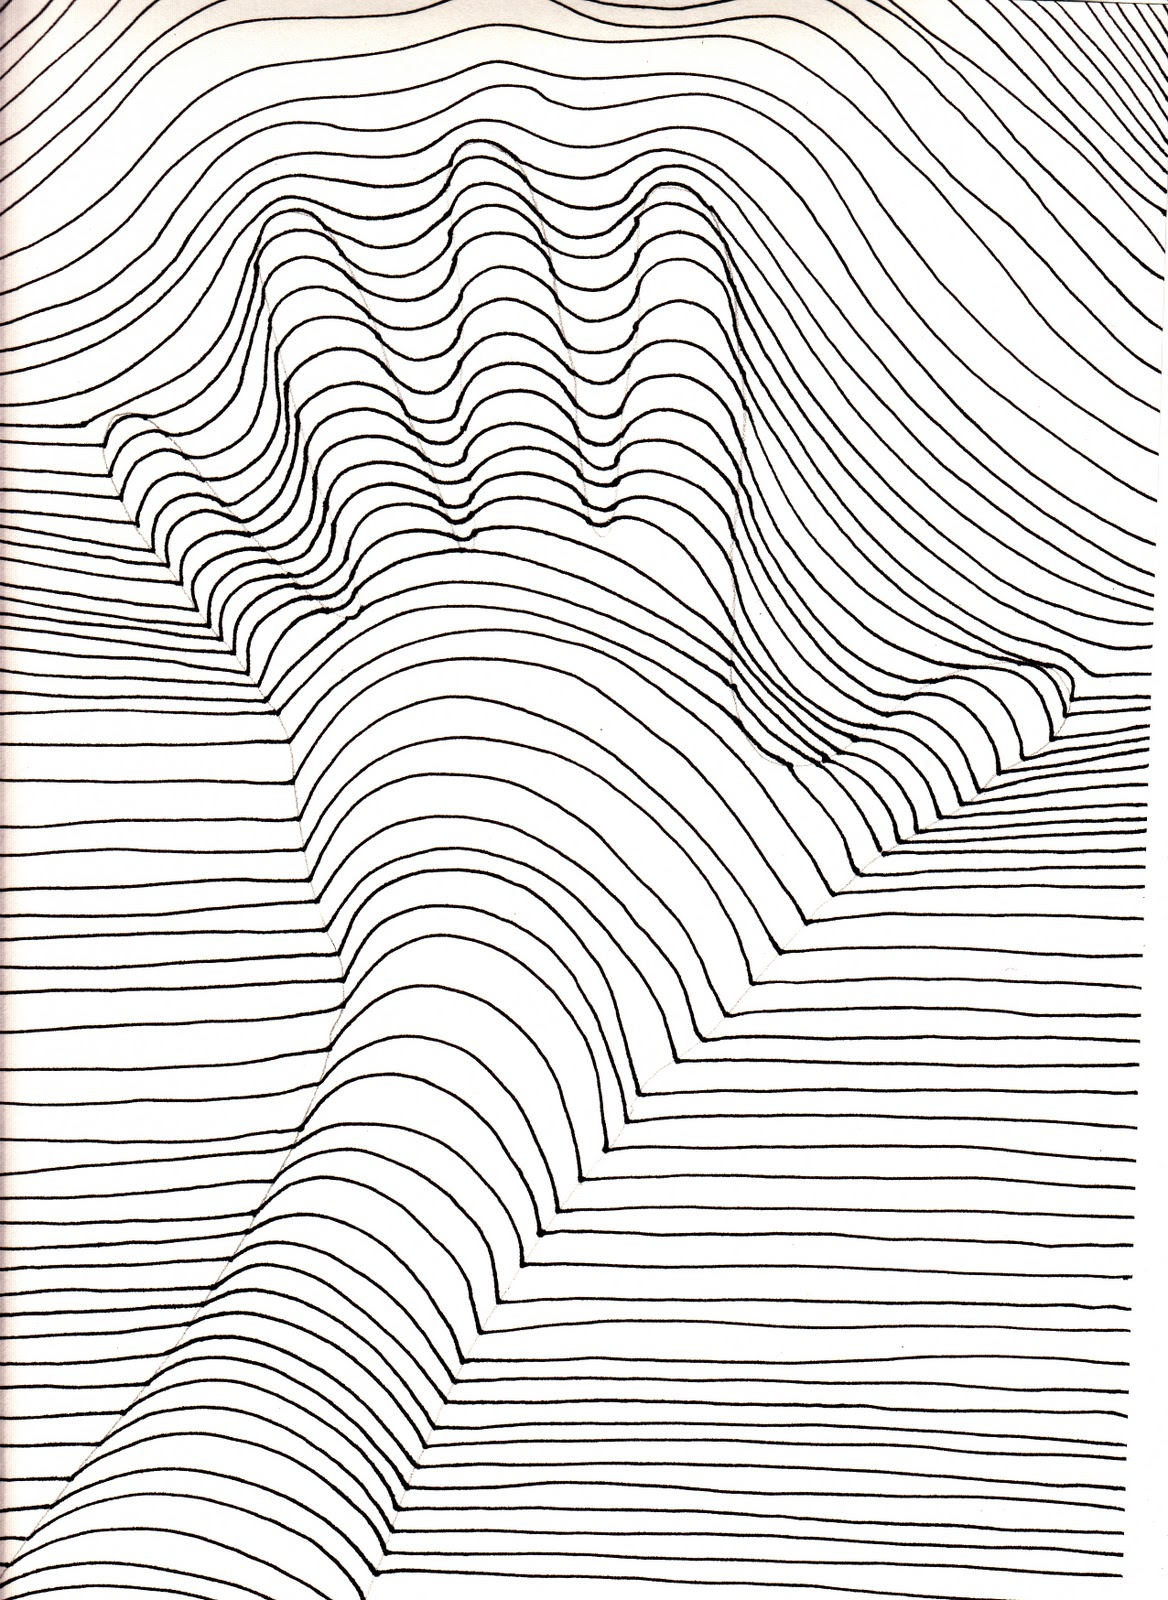 Artwork Using Lines : The creative spirit op art hands that pop